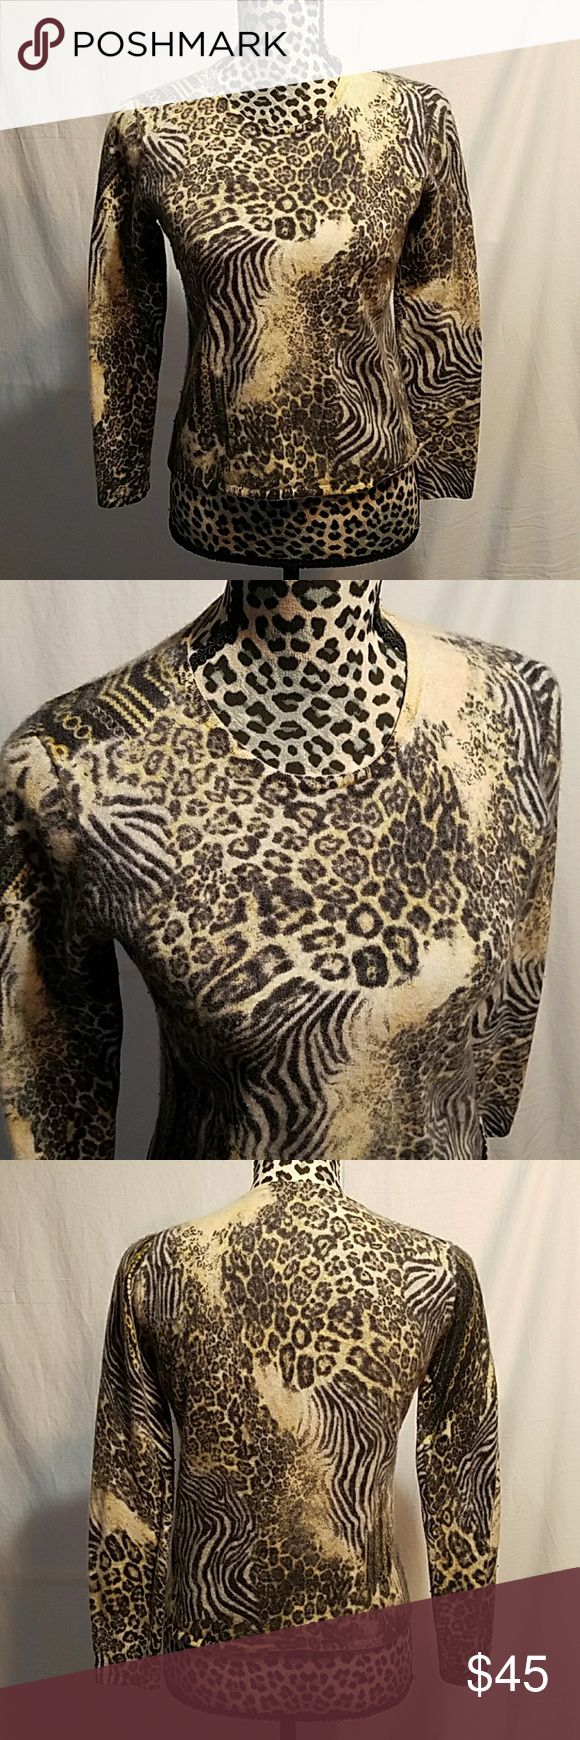 "🦇🎃Neimun Marcus Cashmere 100% cashmere Animal Print. In good condition Women's size XL Bust 17"" Waist 16"" Sleeve length 22"" Total lenght 21""  Price is Firm Neiman Marcus Tops"